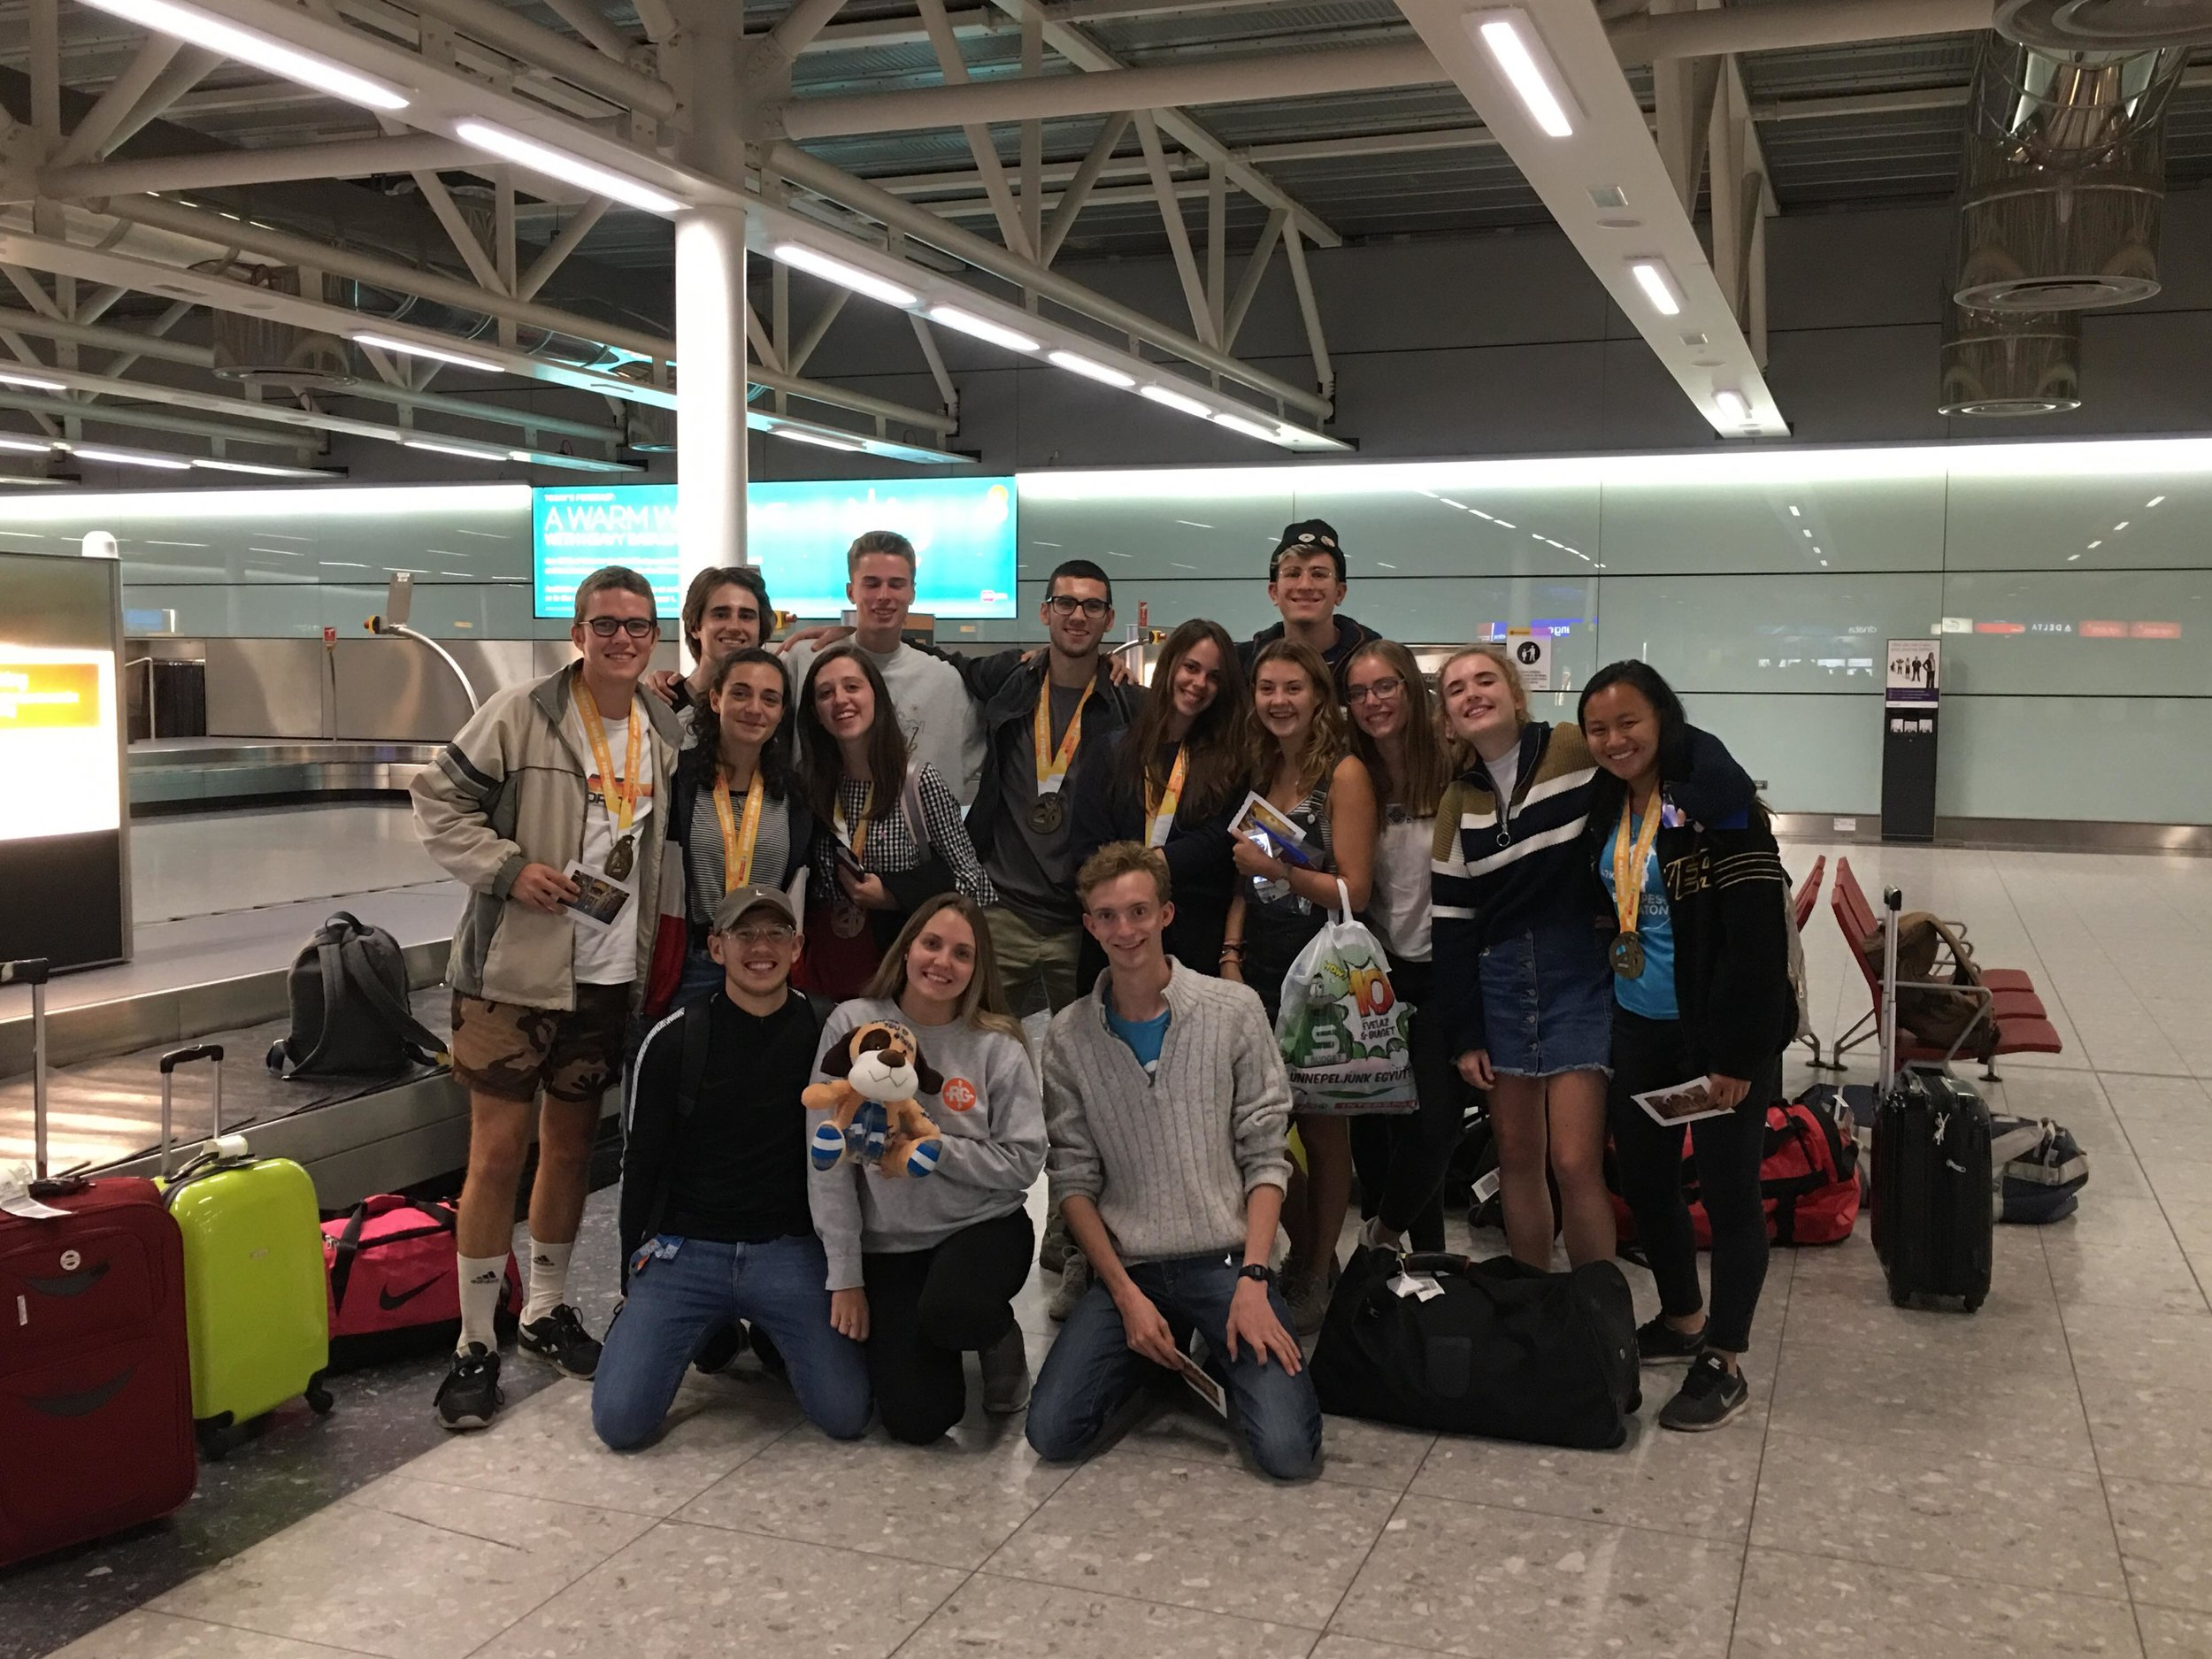 The teams final goodbyes at Heathrow.